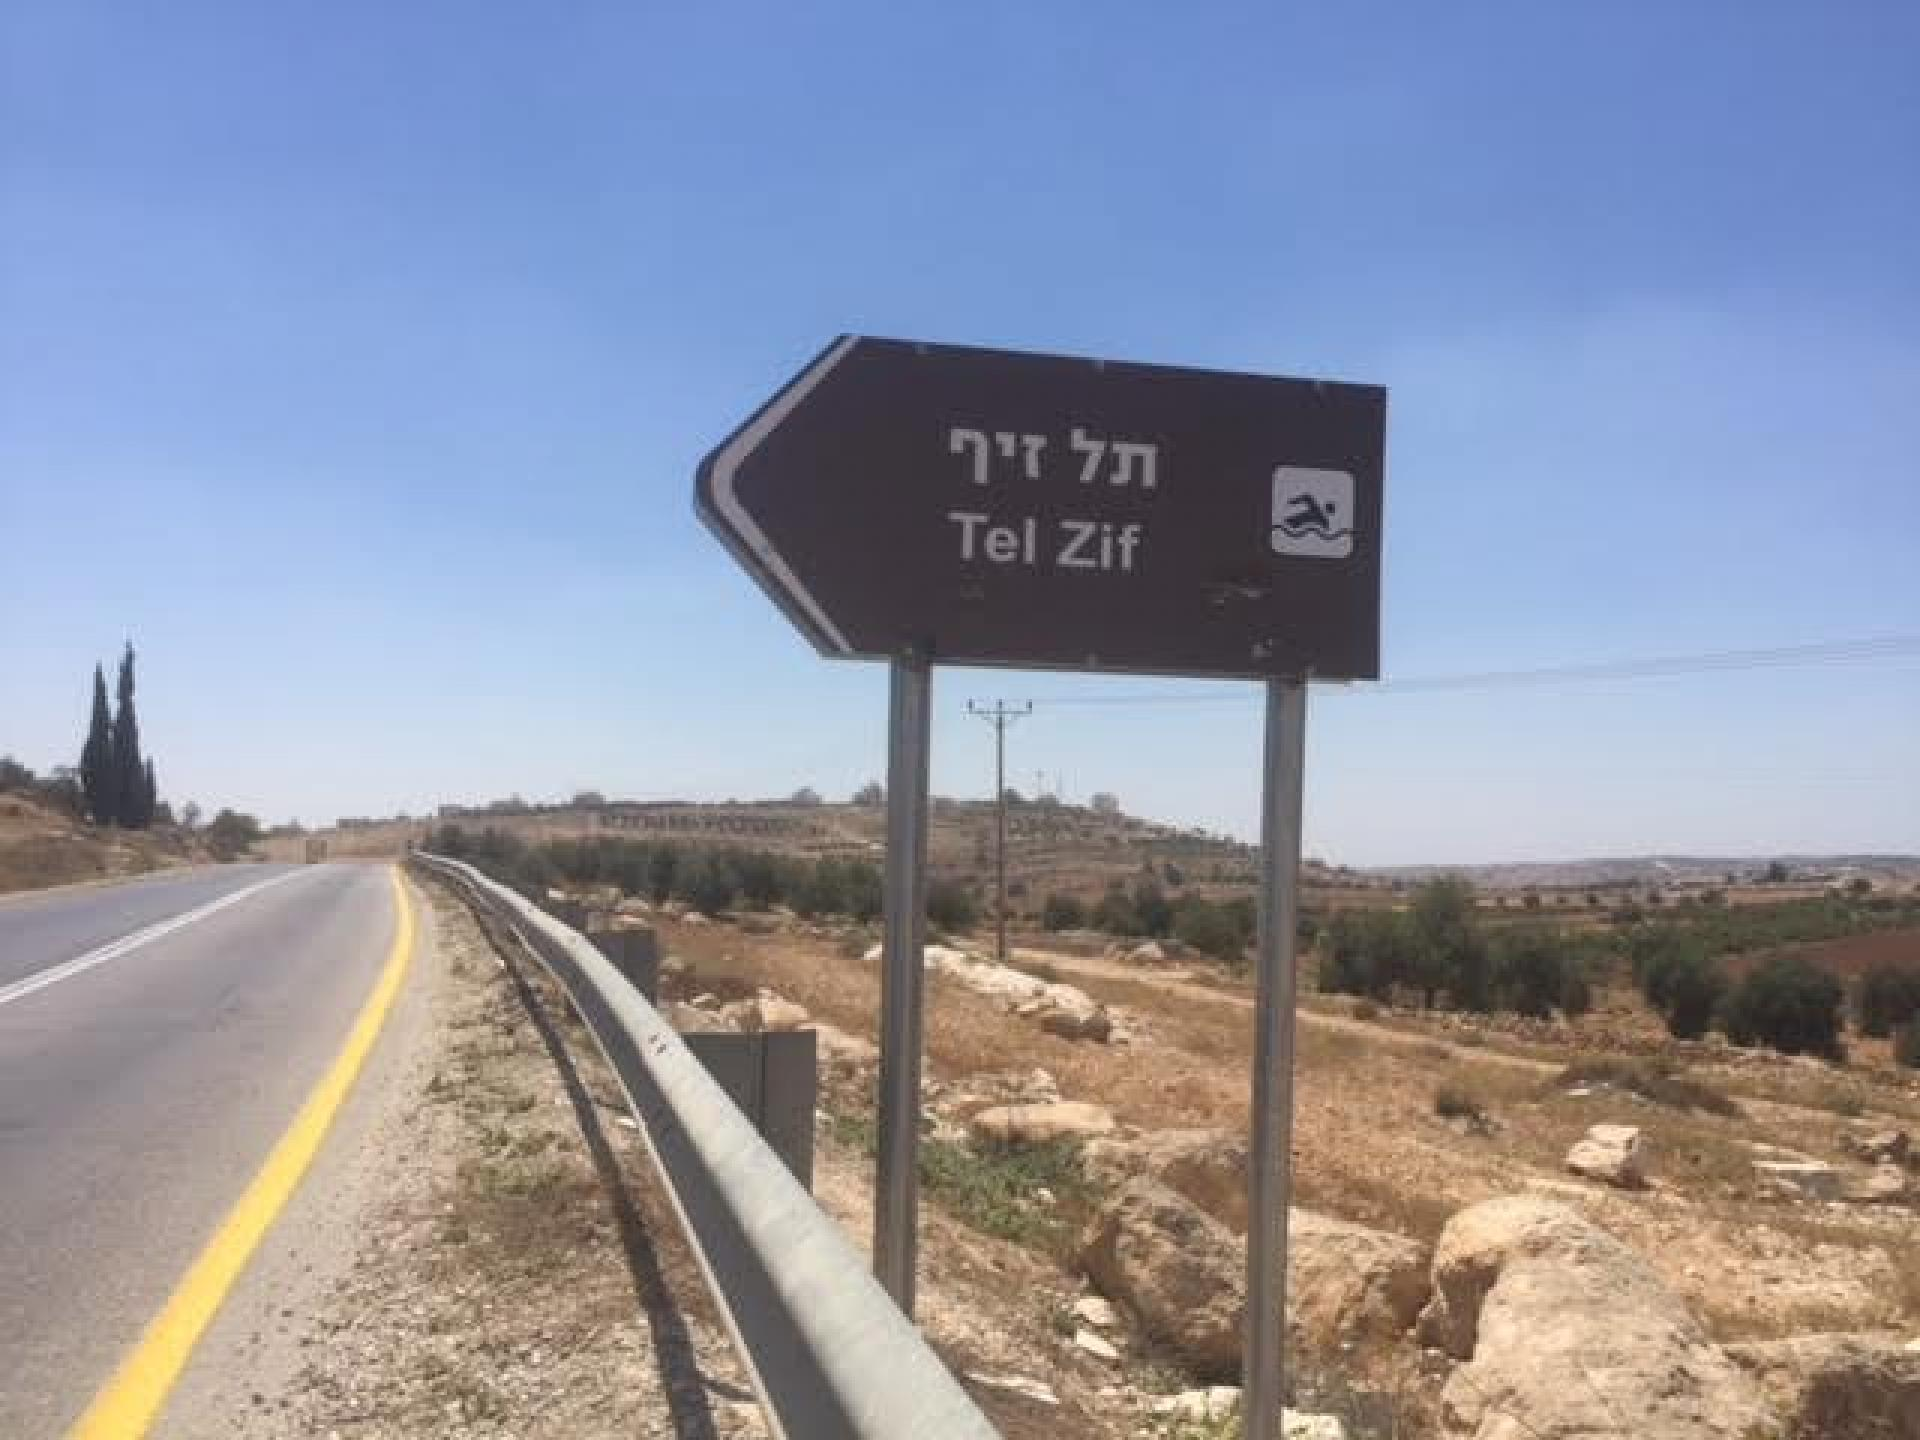 Tel Zif - the directing sign only in Hebrew